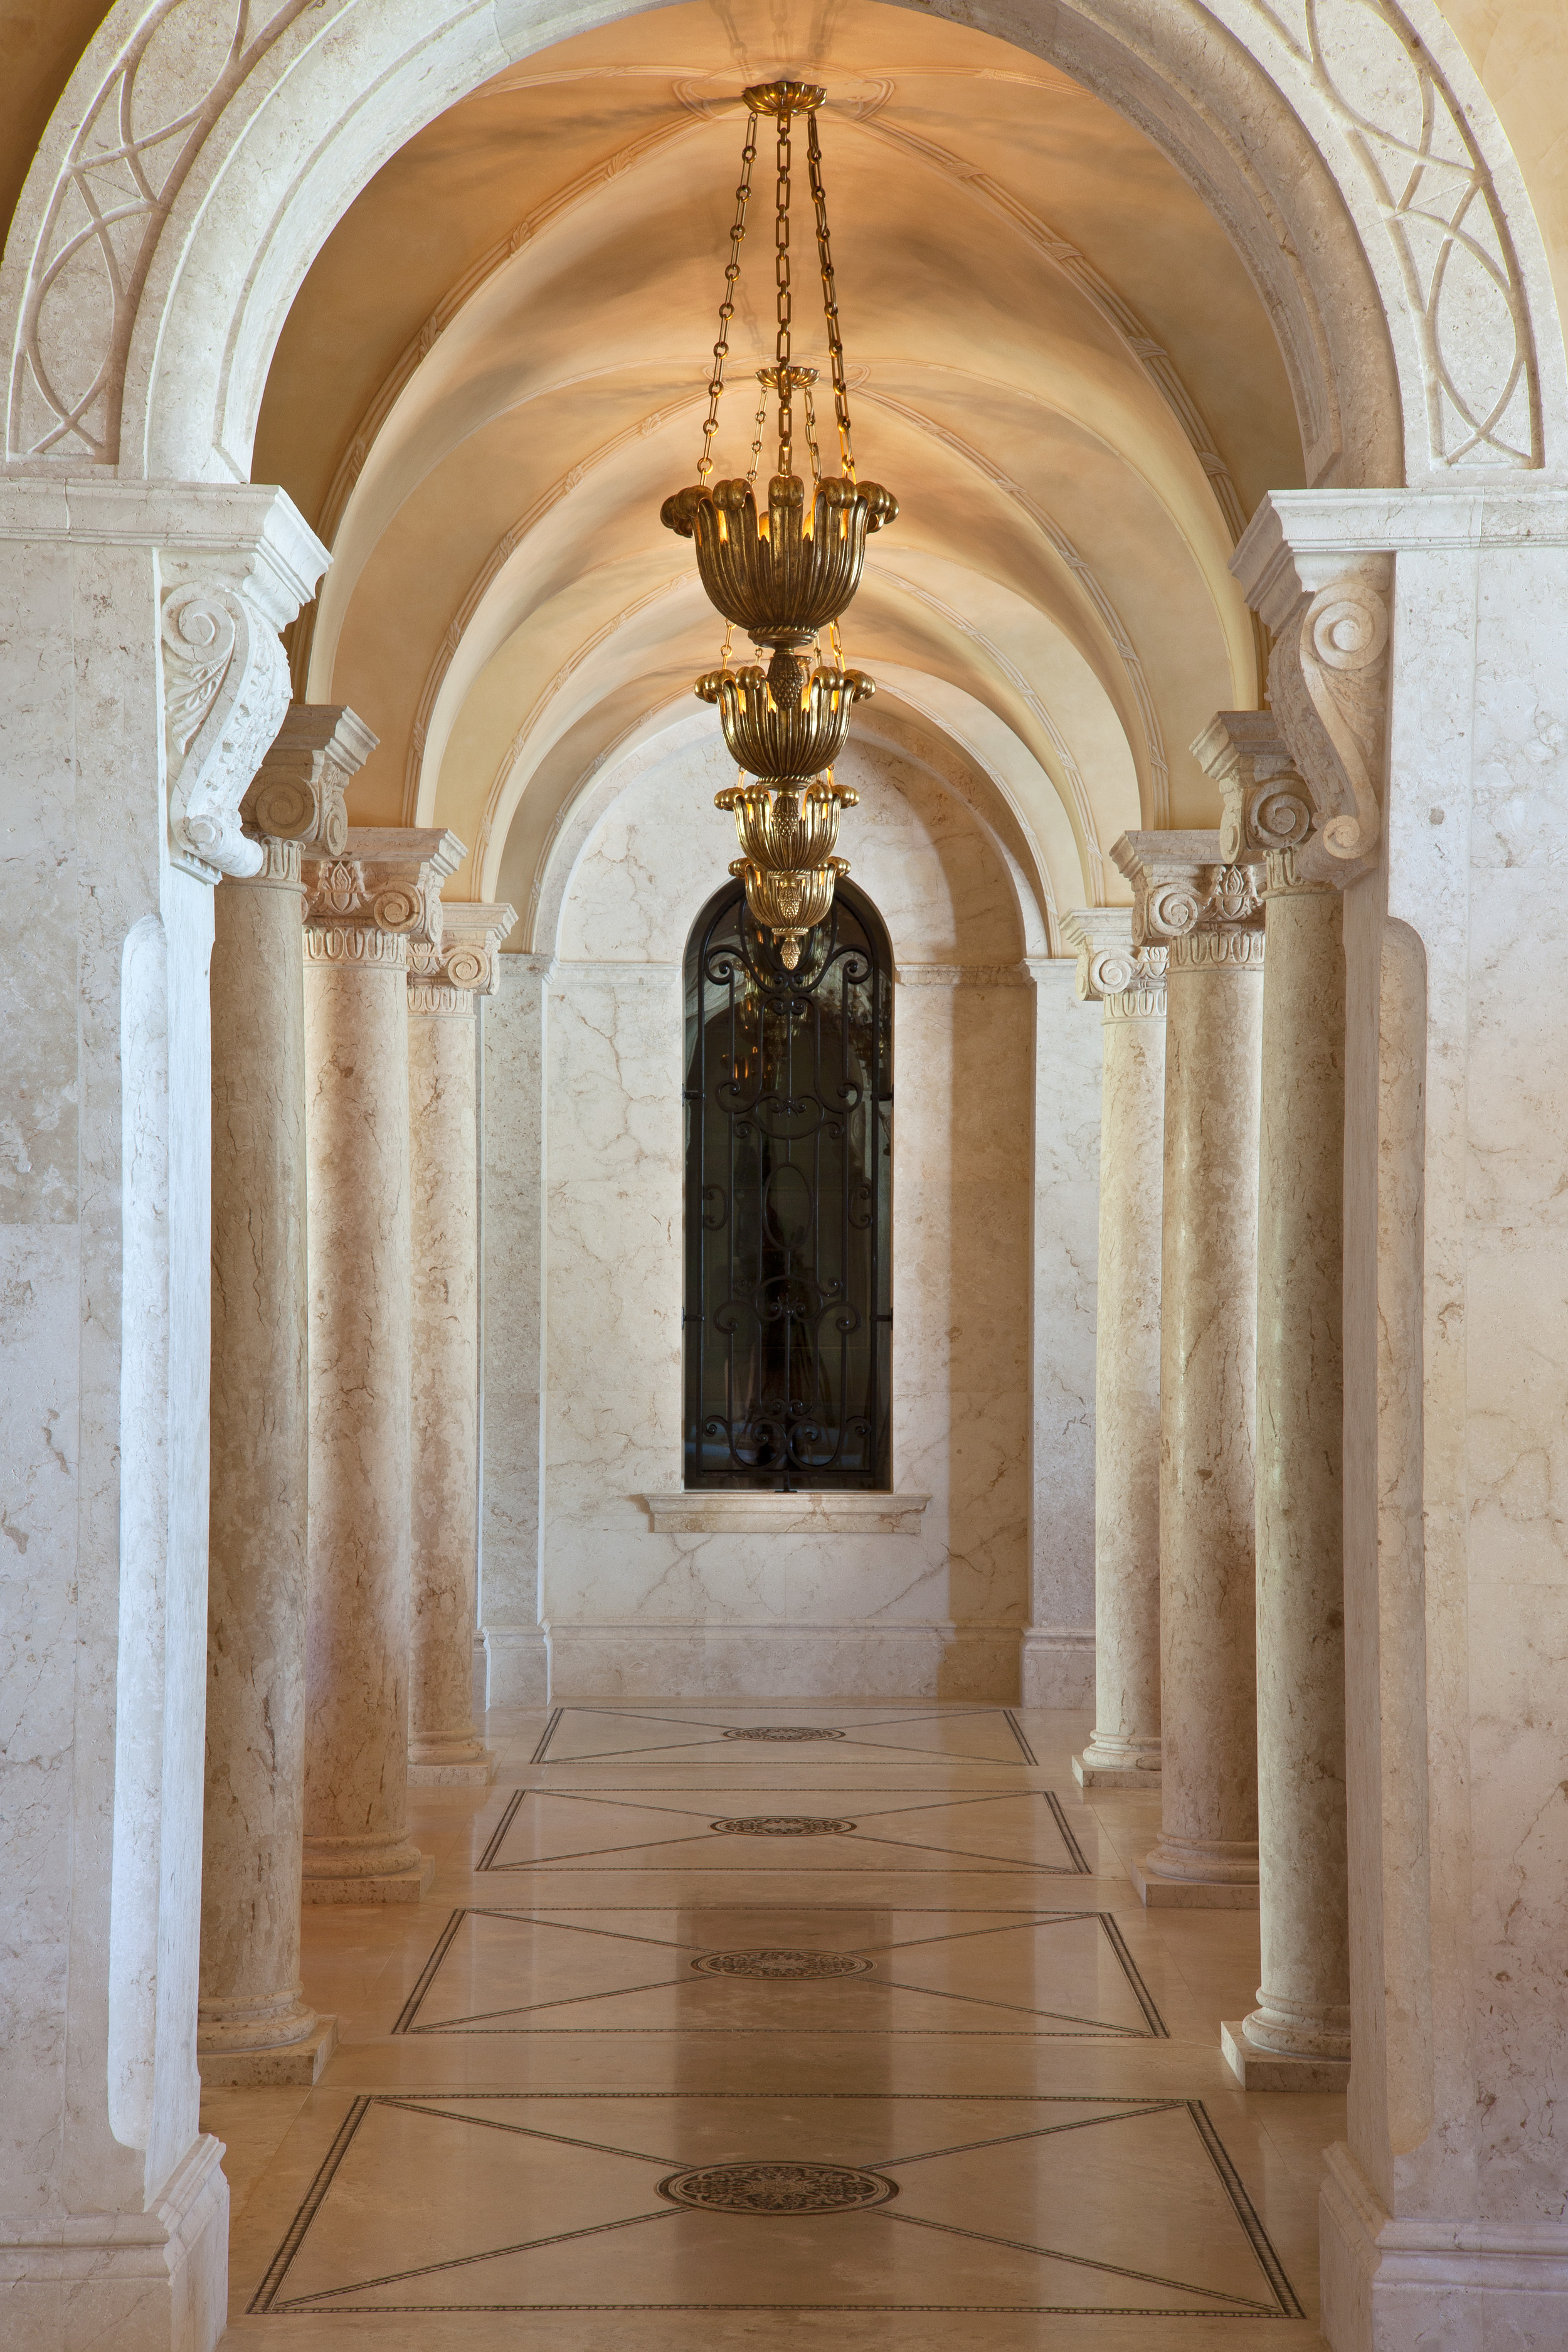 The vaulted corridor was designed to provide access to the great room on the west side of the house and culminates at the entrance to the wine cellar iron grille. The floor and ceiling were carefully planned out so that lanterns hang directly over the complex medallions laser etched into the limestone flooring.